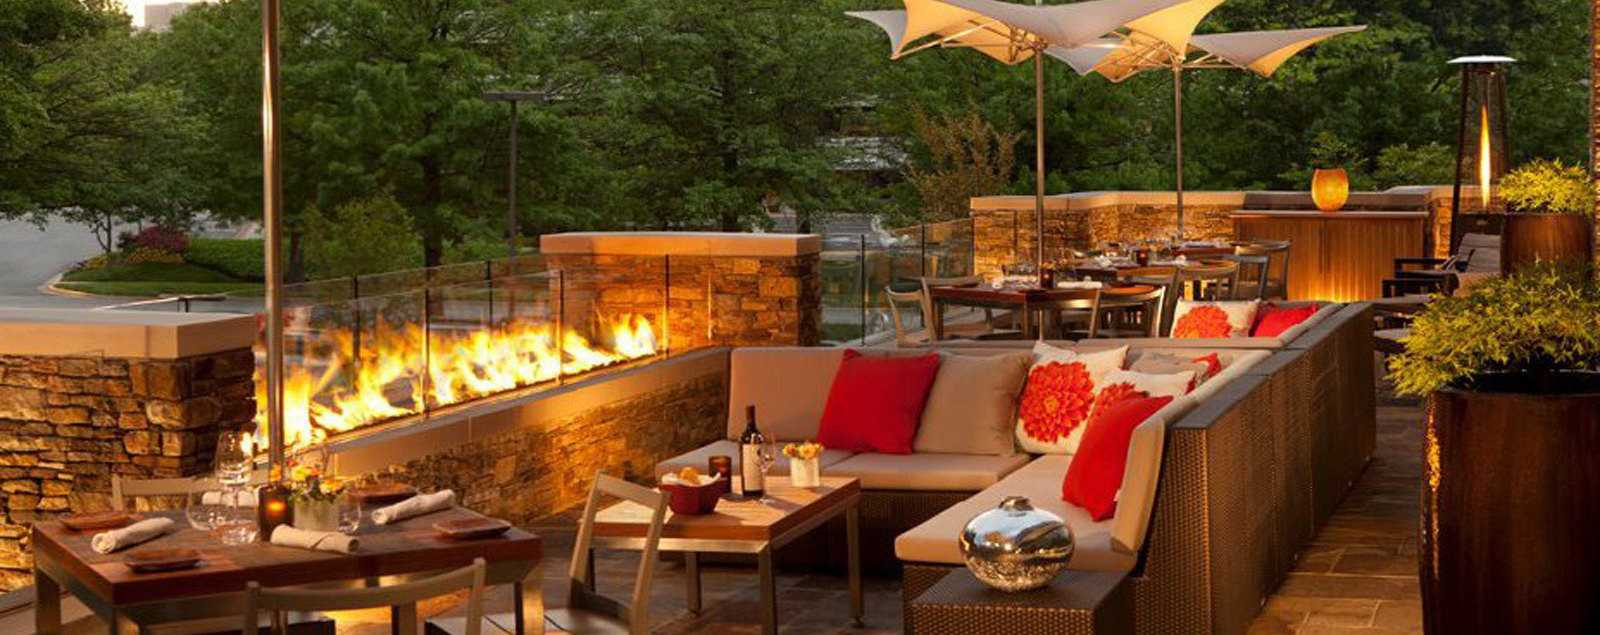 Outdoor Dining Amp Restaurants With Patios Fairfax County